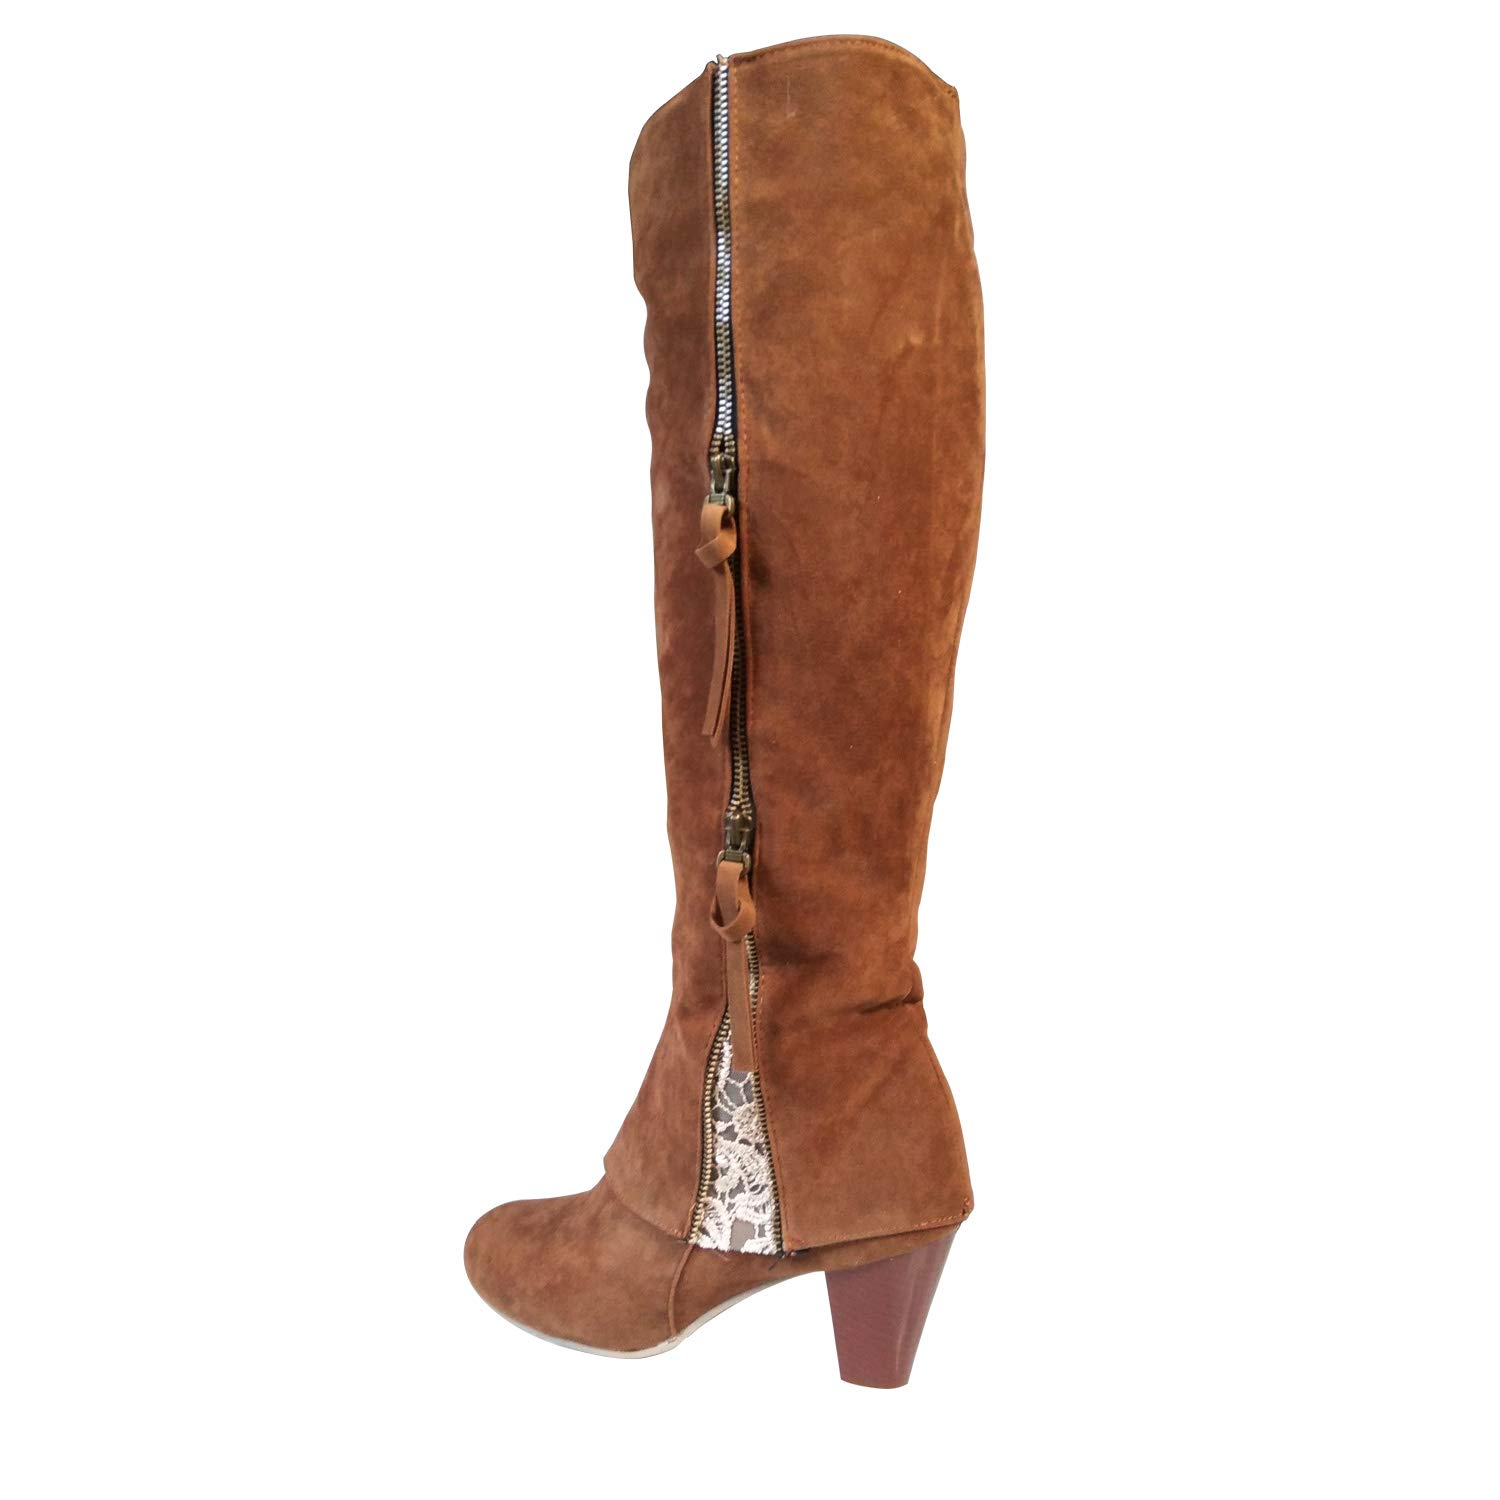 f48afd741e3 Luoweikadeng Women Riding Boots Fold Over Design Near The Ankle with Lace  Detailing at Edge